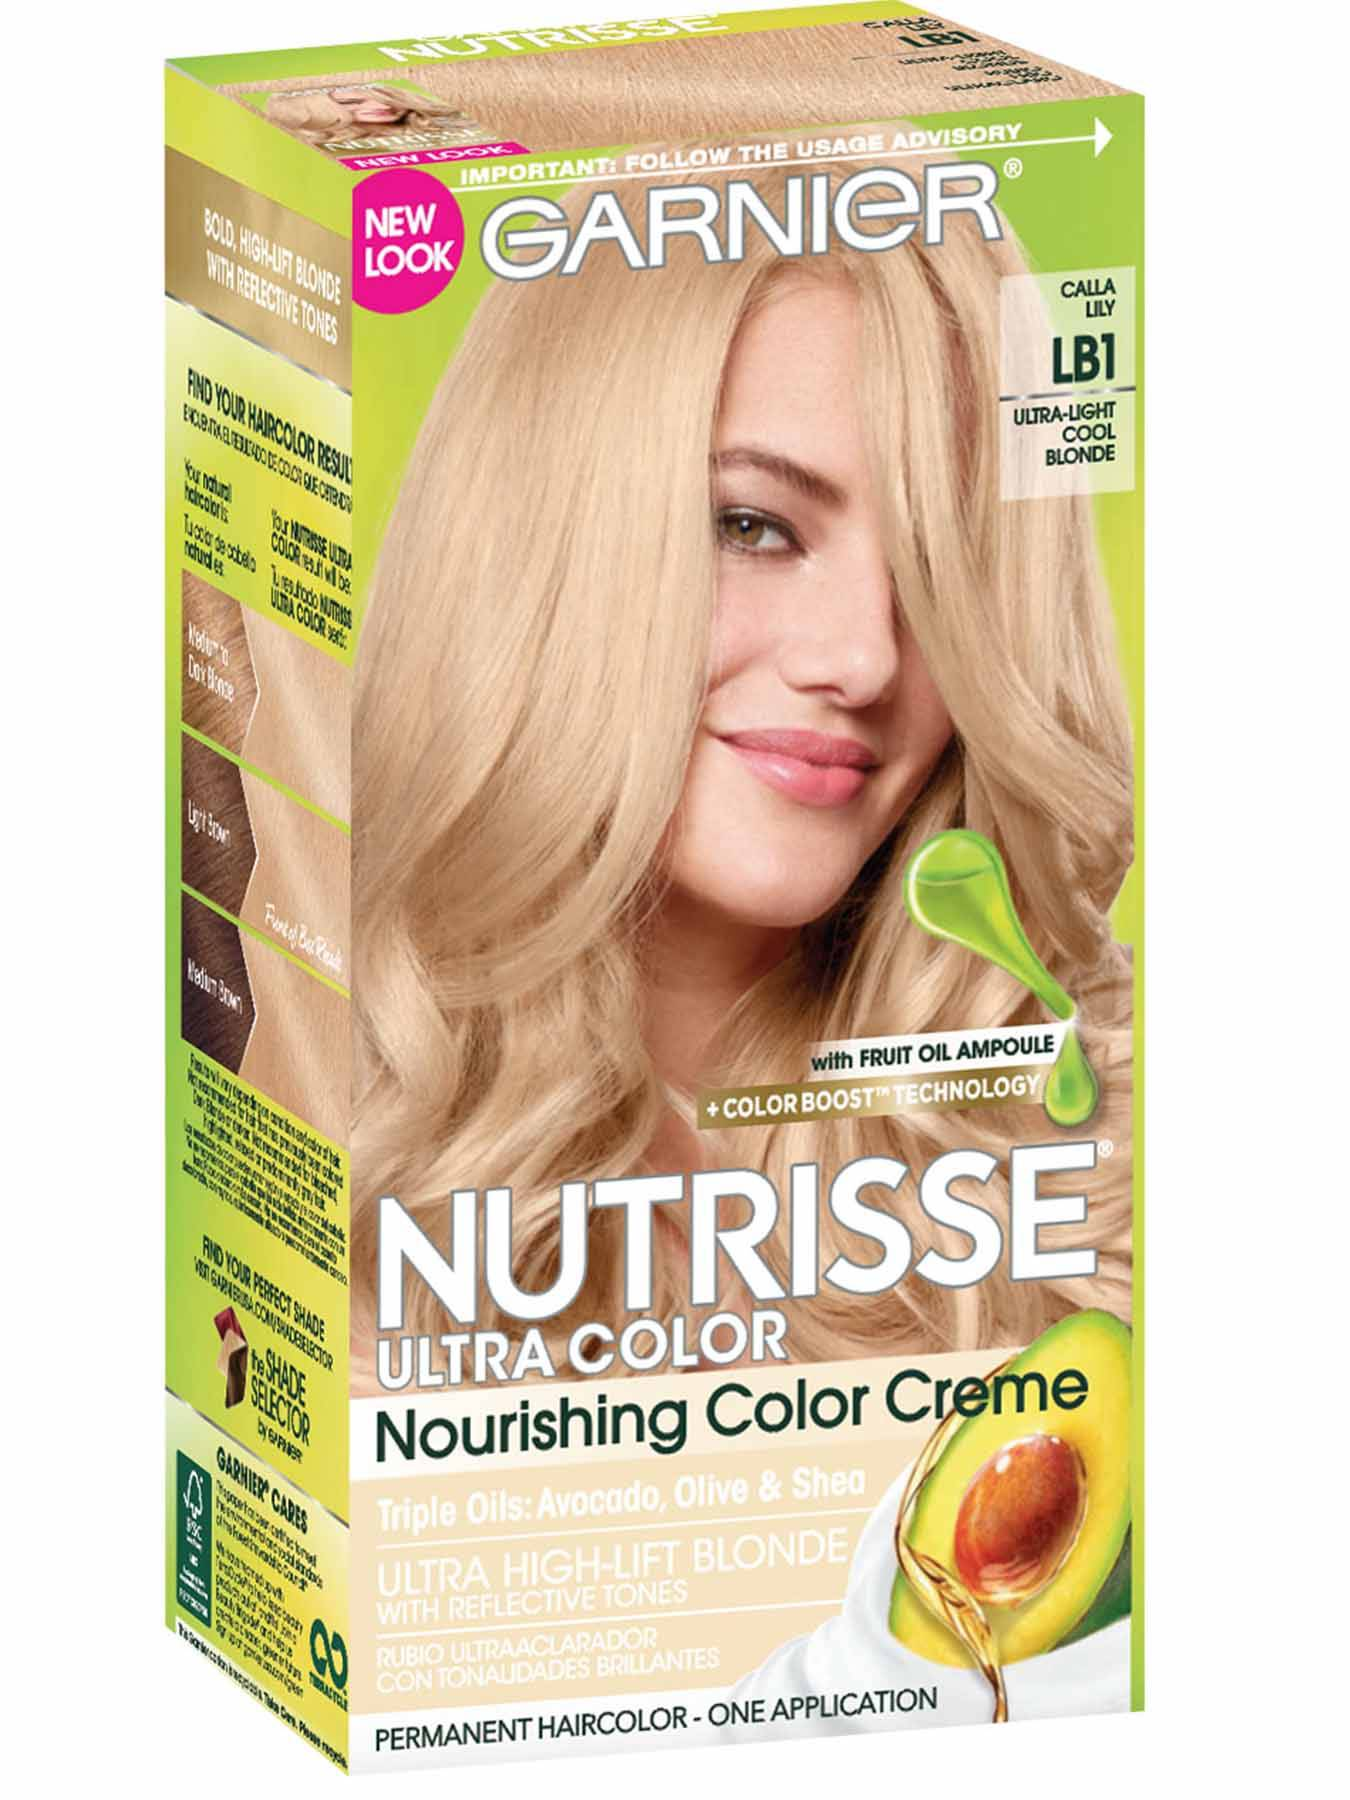 Nutrisse Ultra Color Ultra Light Cool Blonde Hair Color